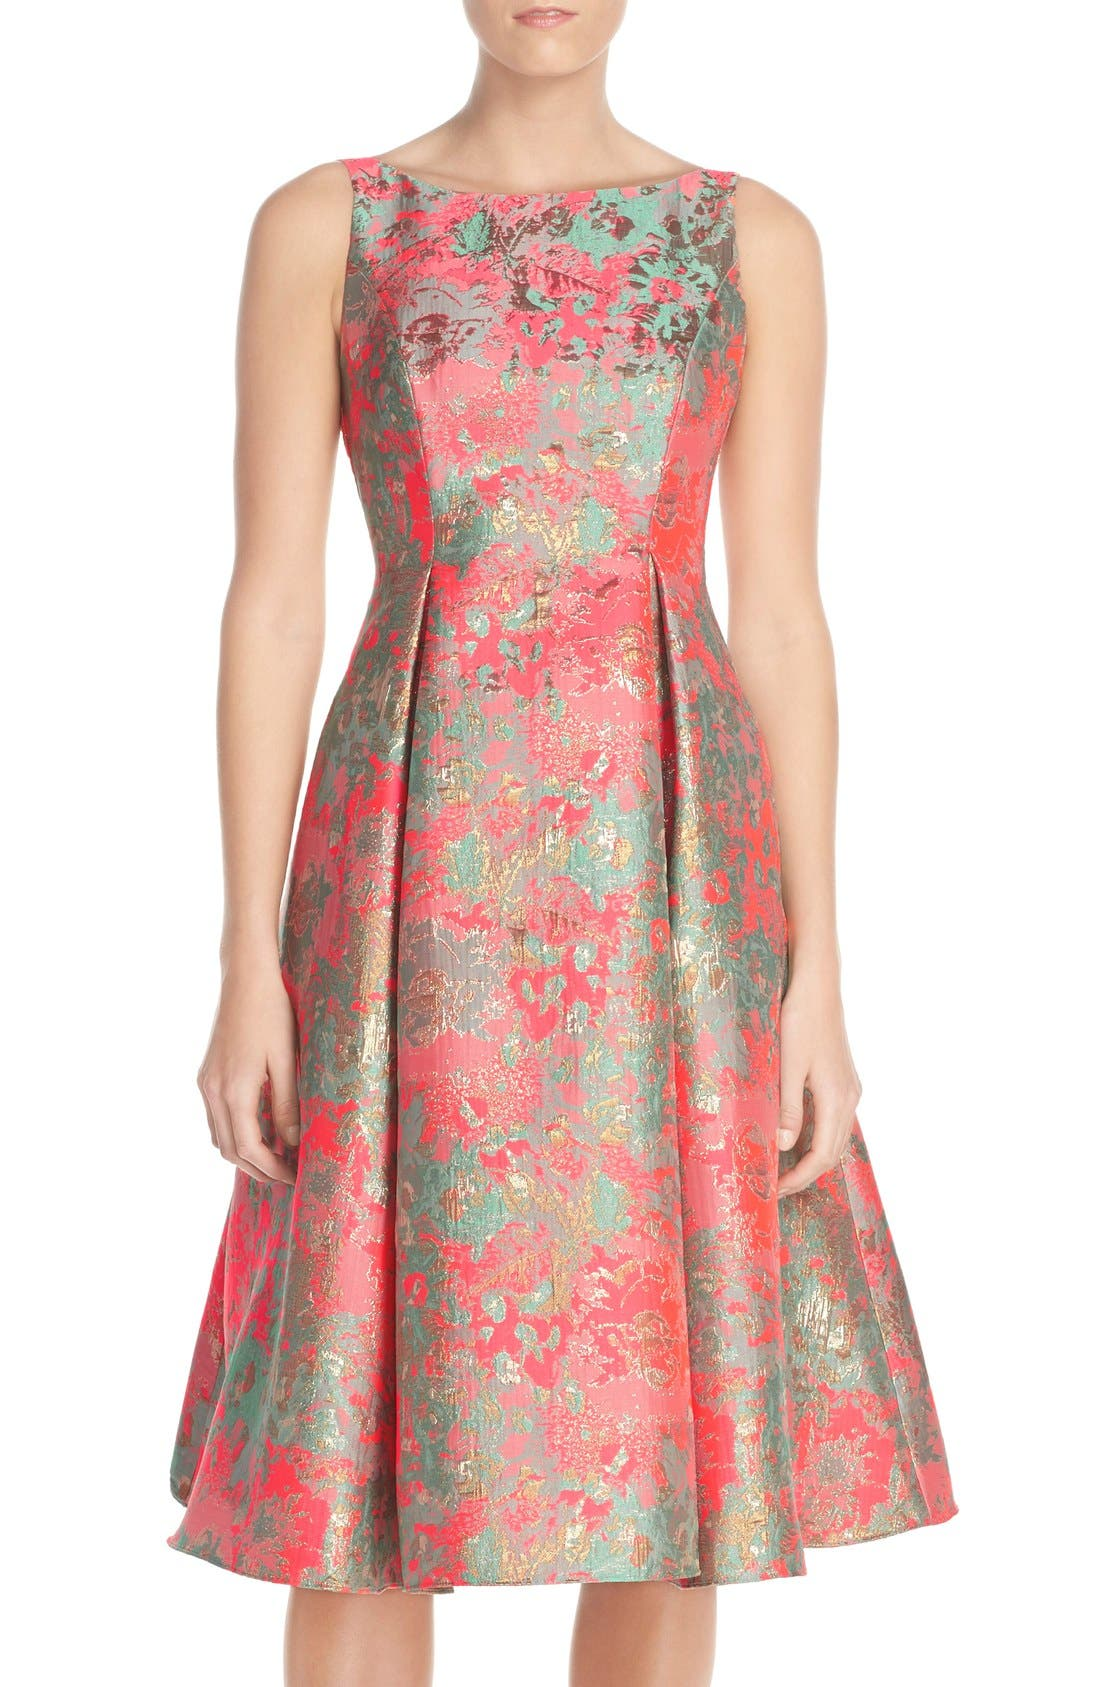 Alternate Image 1 Selected - Adrianna Papell Metallic Jacquard Fit & Flare Dress